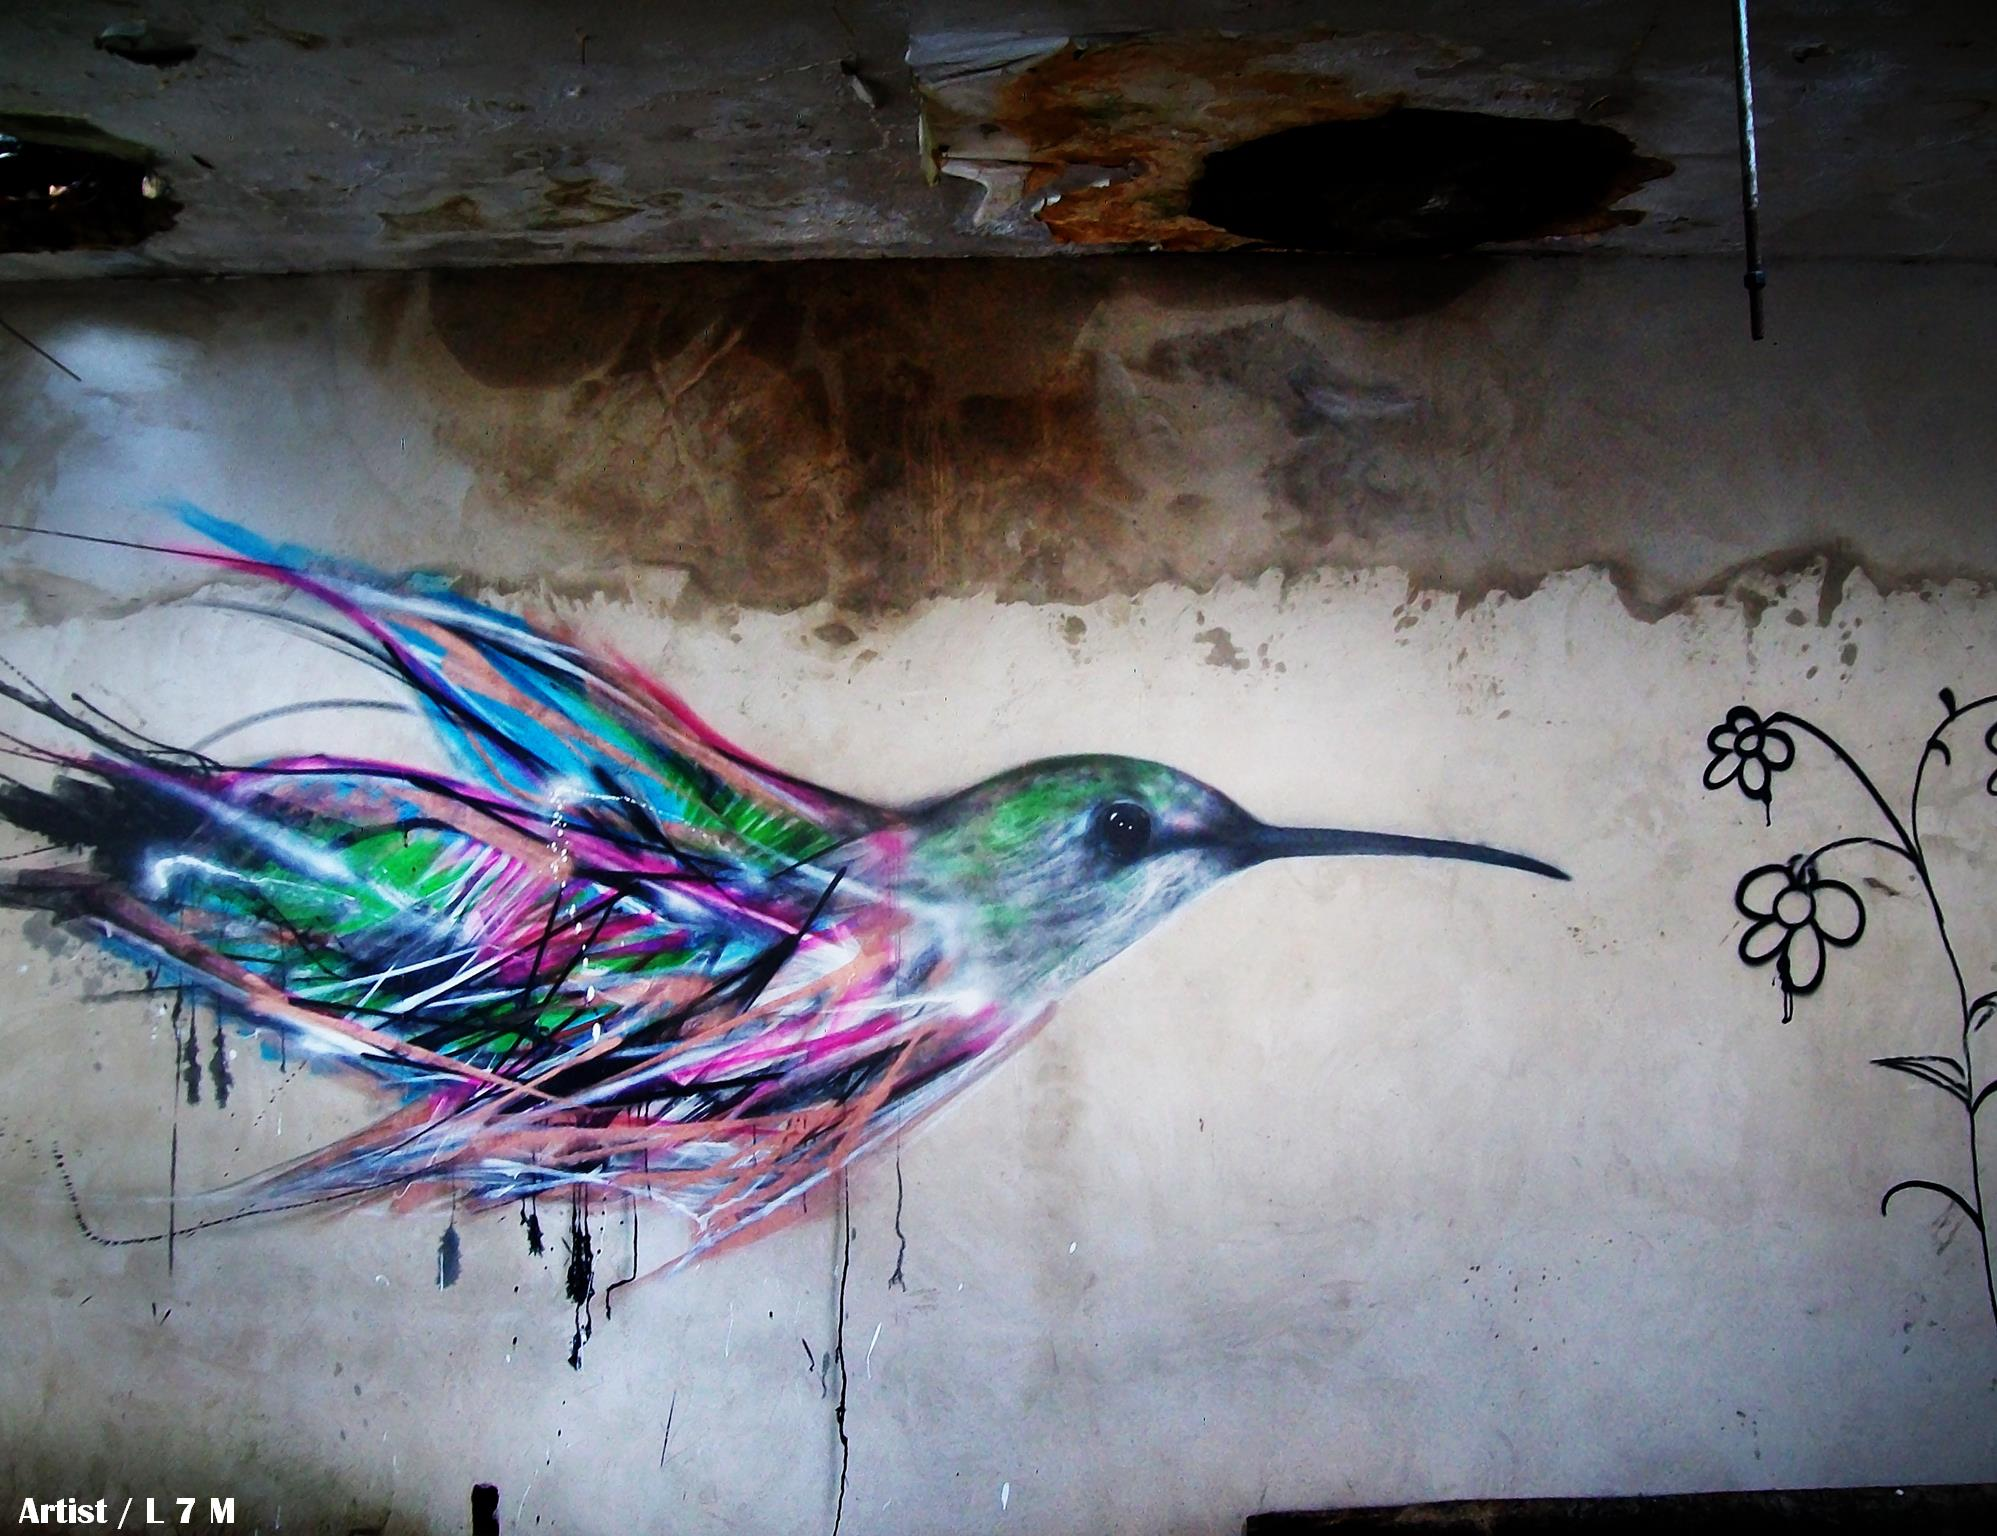 graffiti birds by brazilian artist l7m 8 Graffiti Birds by Brazilian Artist L7M